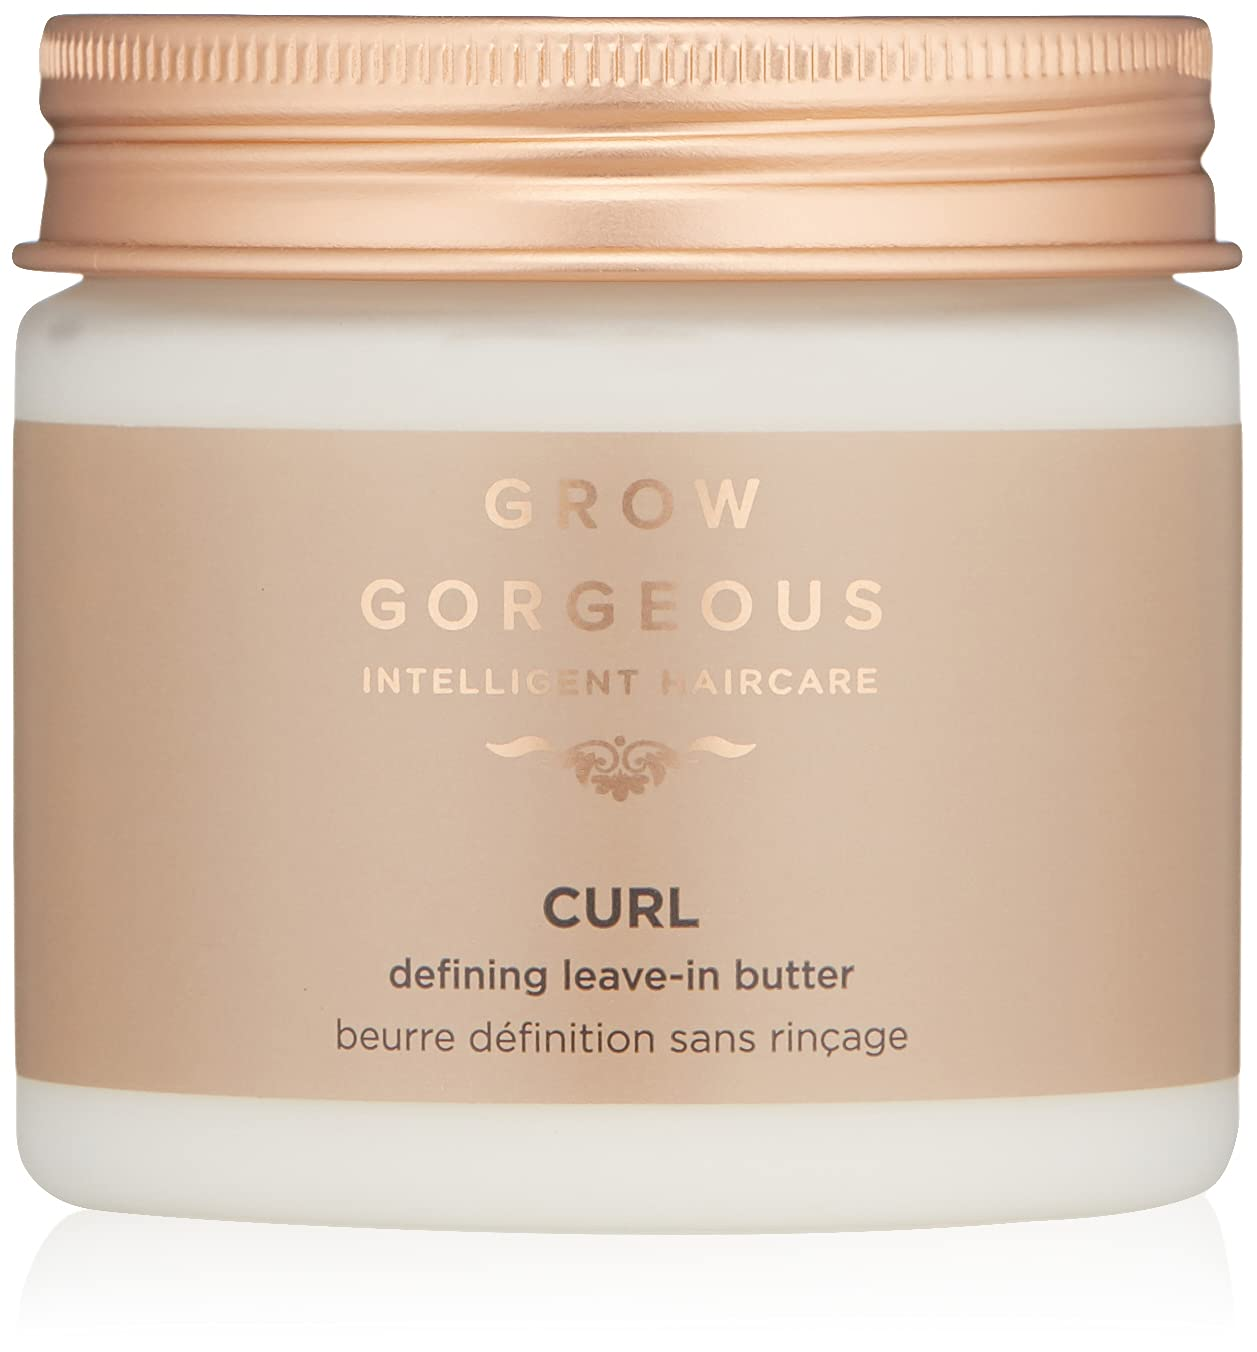 Max 52% OFF Grow Gorgeous Curl Butter New mail order 200ml Leave-in